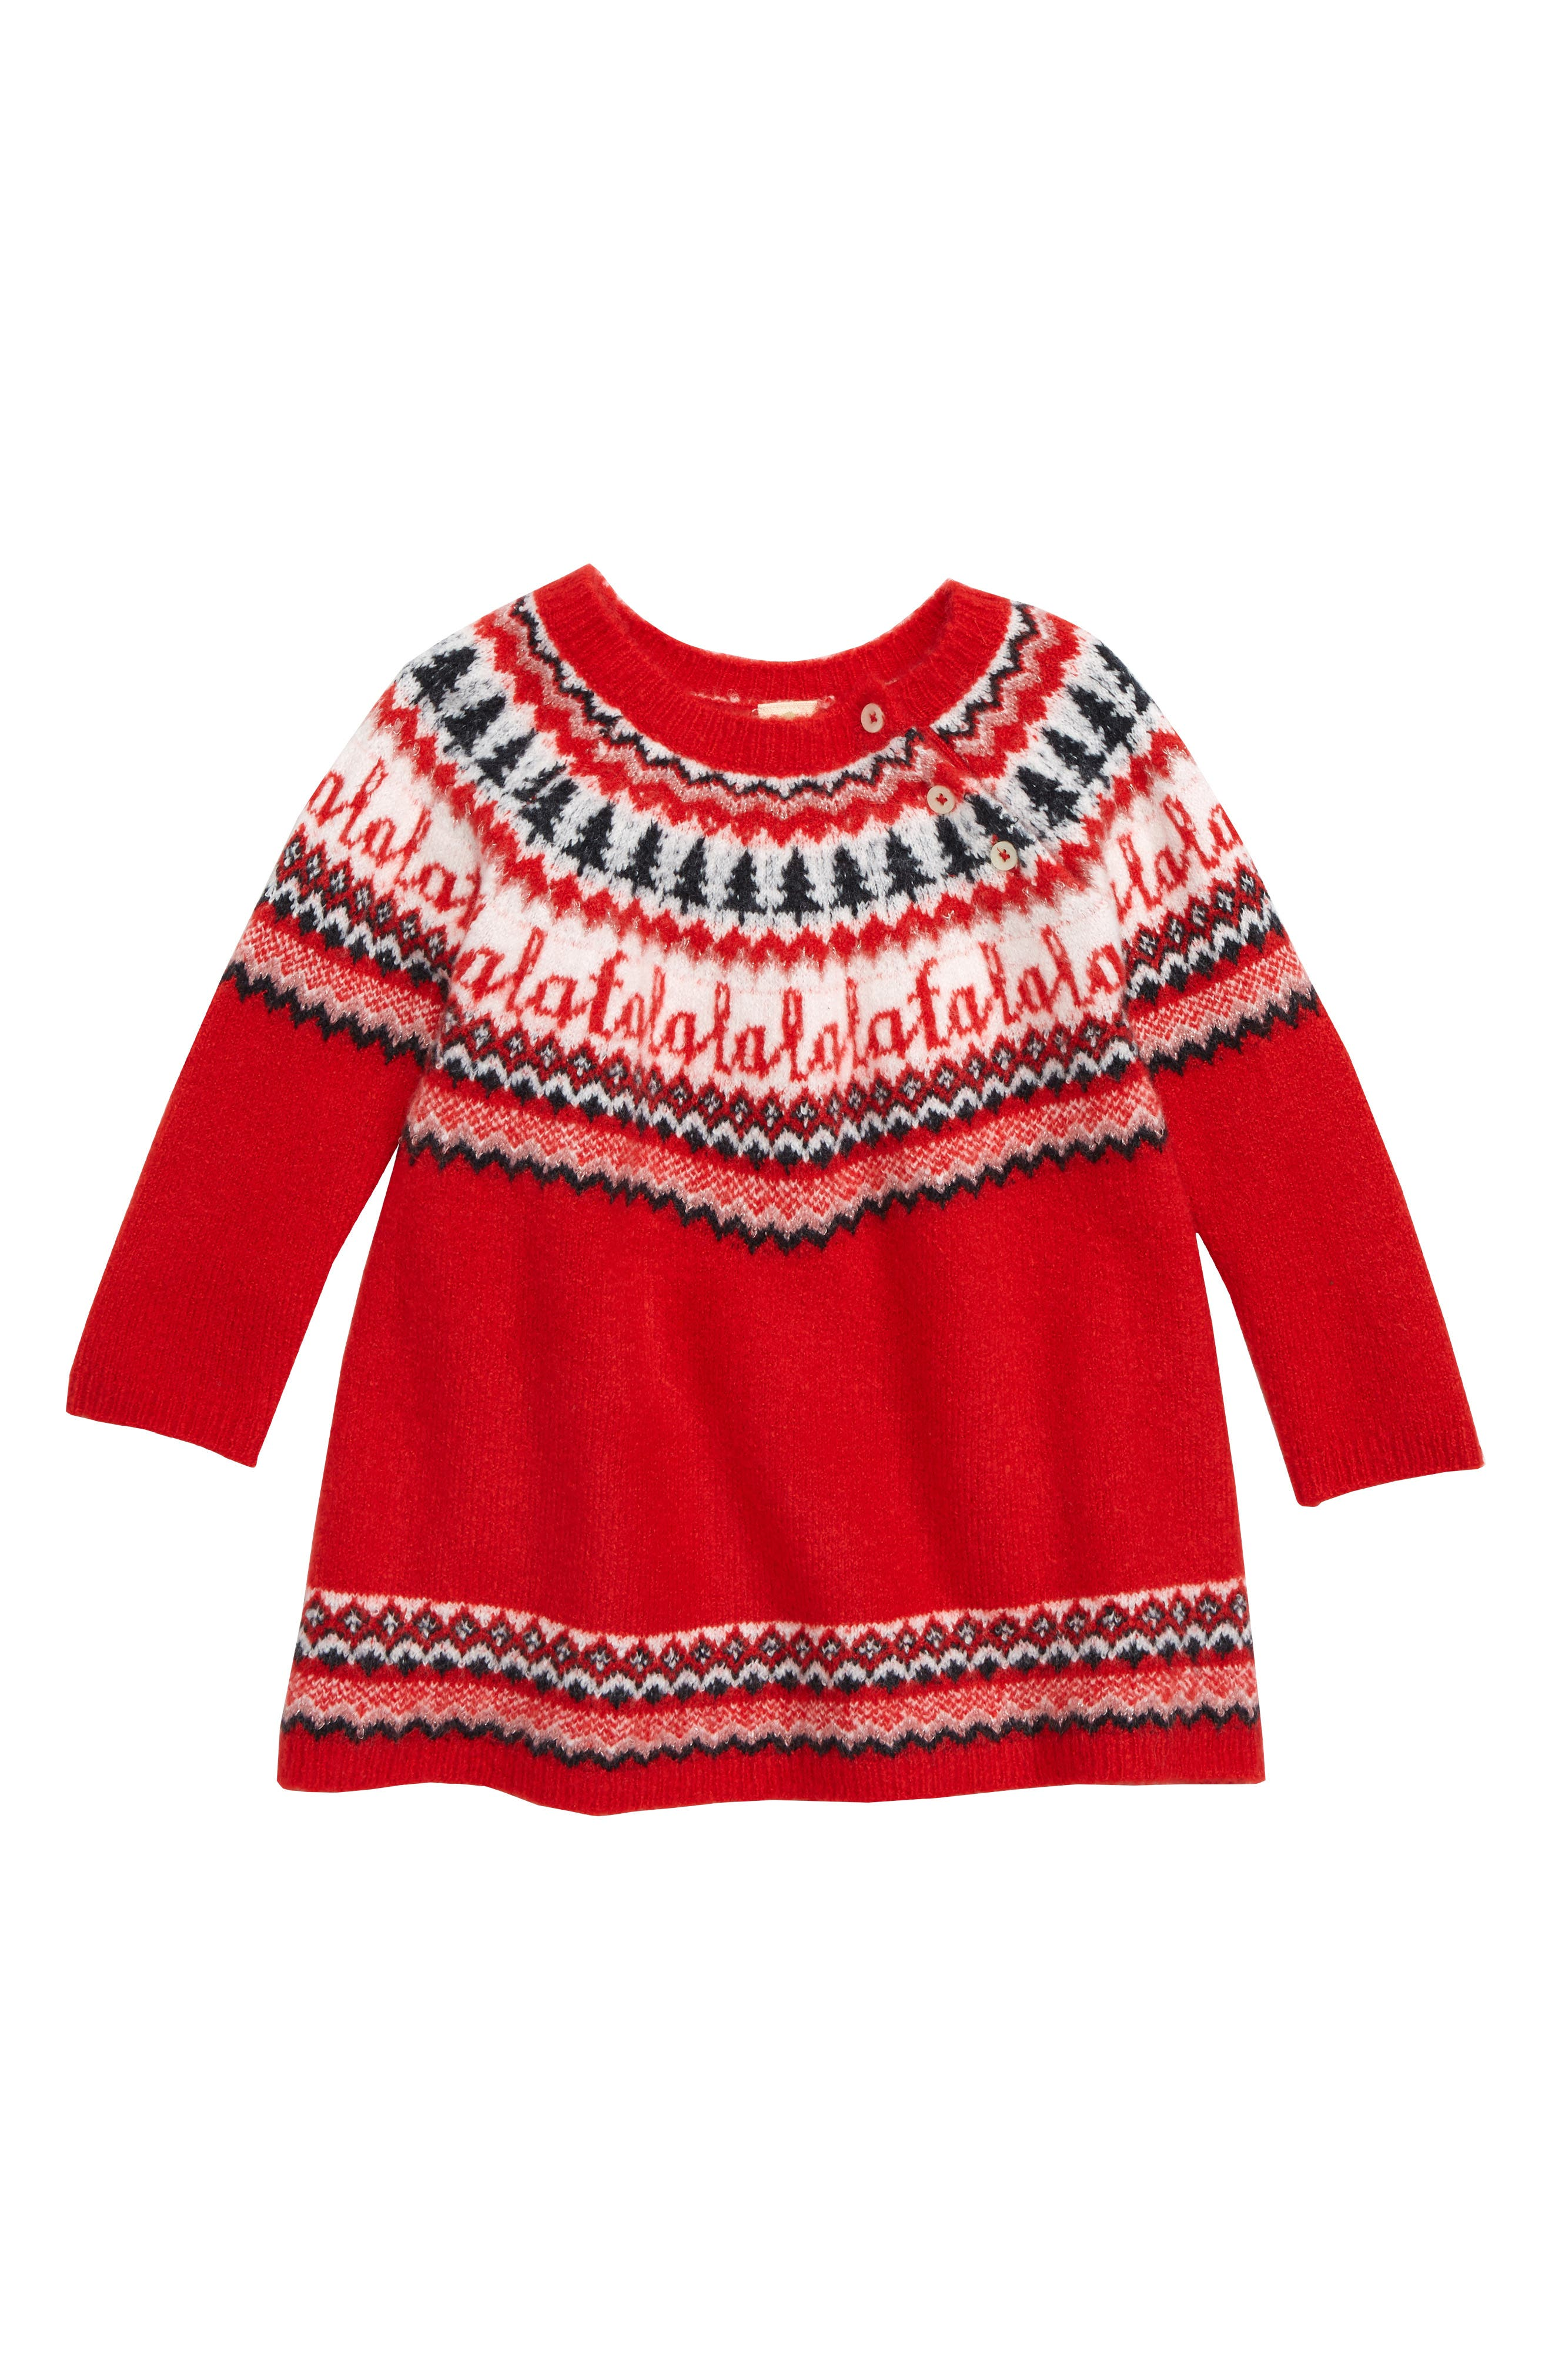 Holiday Sweater Dress,                             Main thumbnail 1, color,                             RED PEPPER NORDIC HOLIDAY